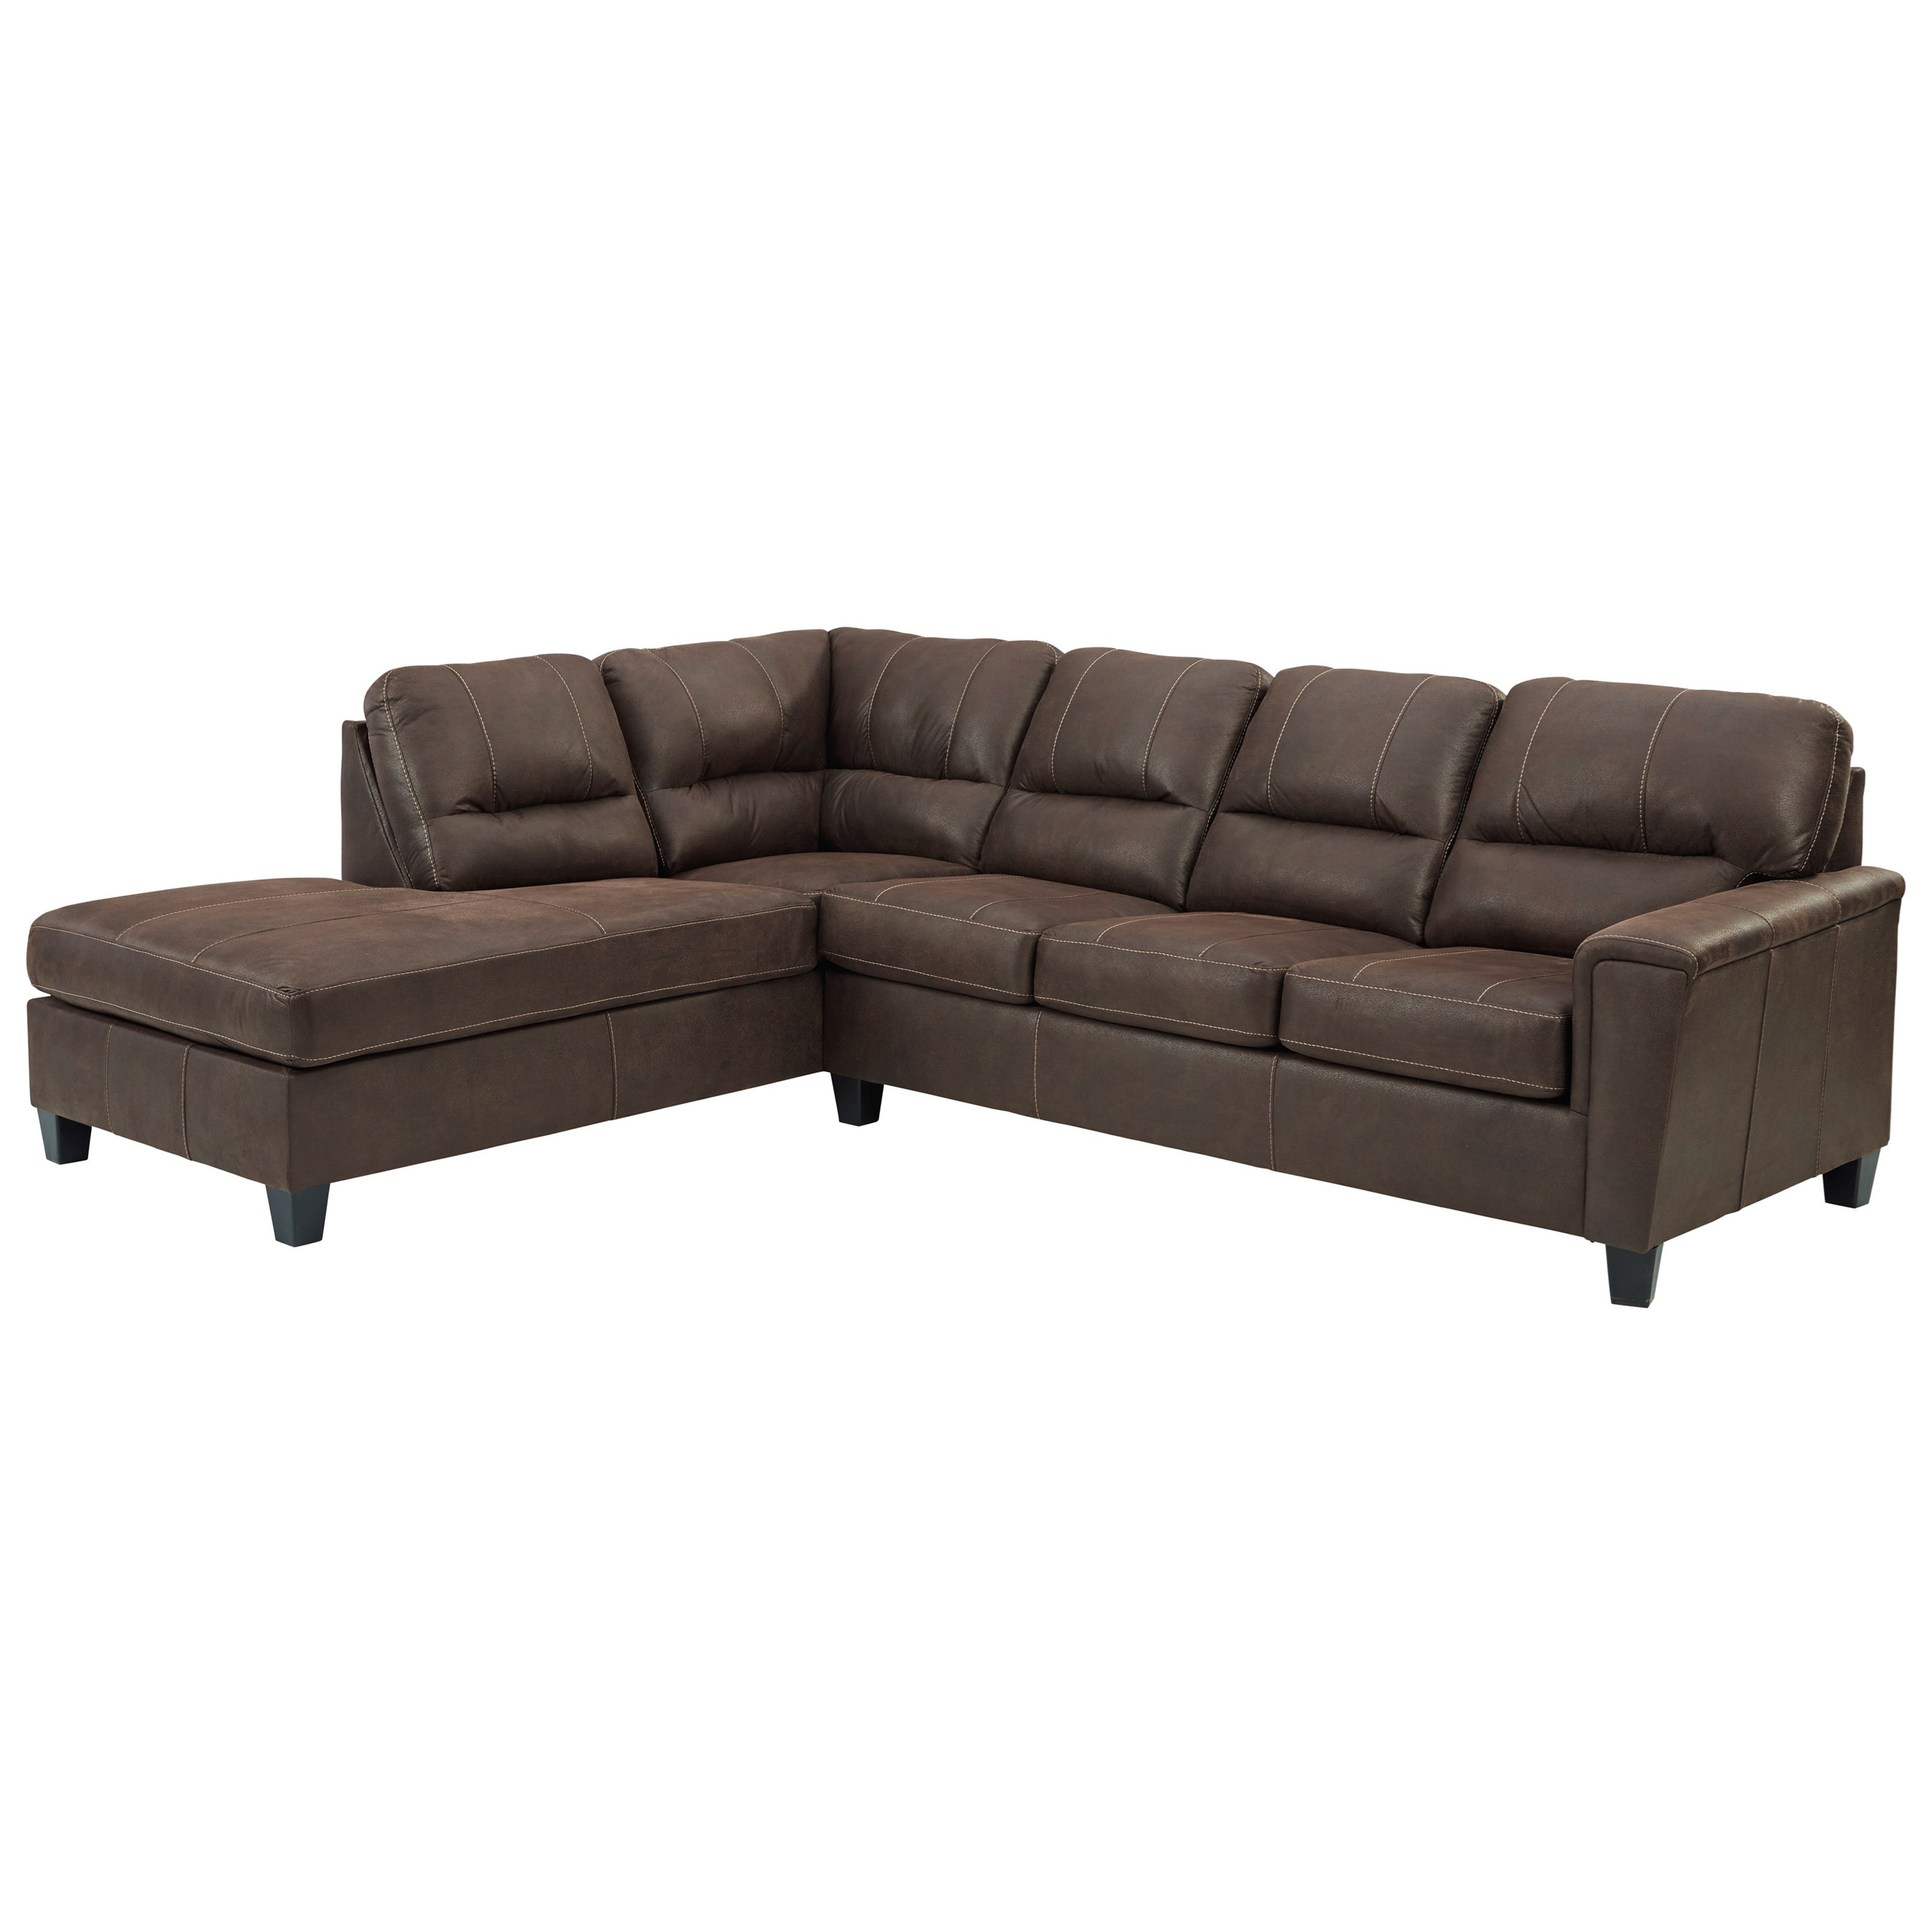 Navi 2-Piece Sectional with Left Chaise by Signature Design by Ashley at Beck's Furniture